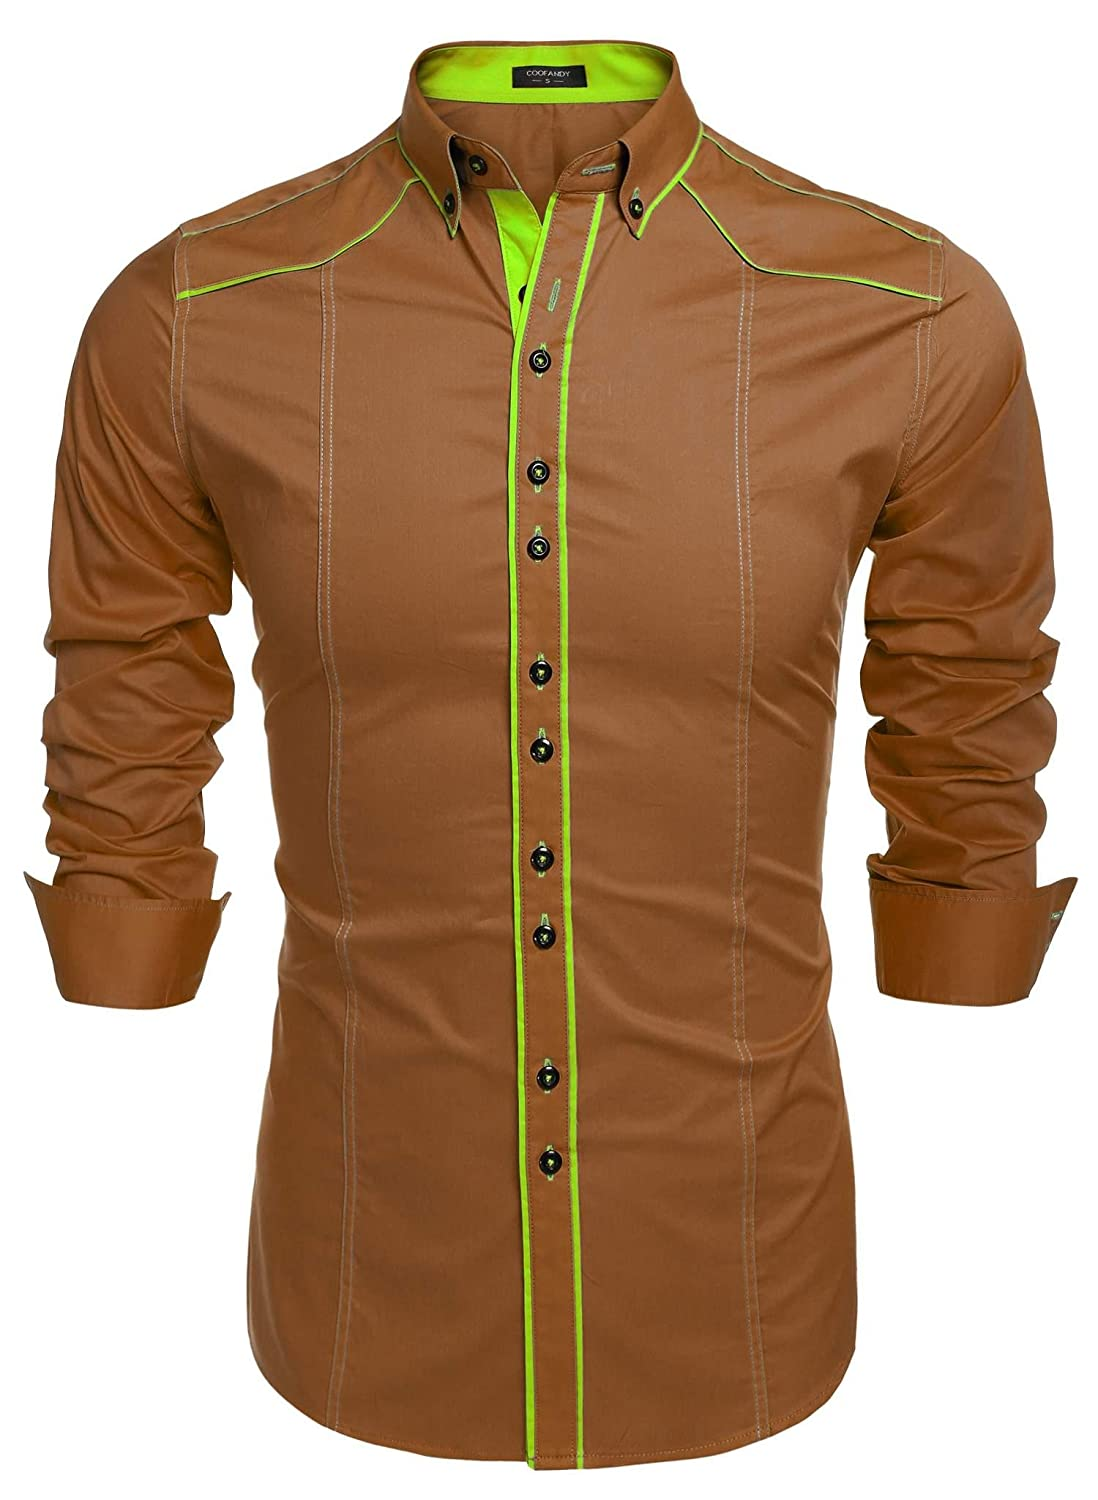 59dcd98fb4d Top 10 wholesale Black And Gold Button Down Shirt - Chinabrands.com